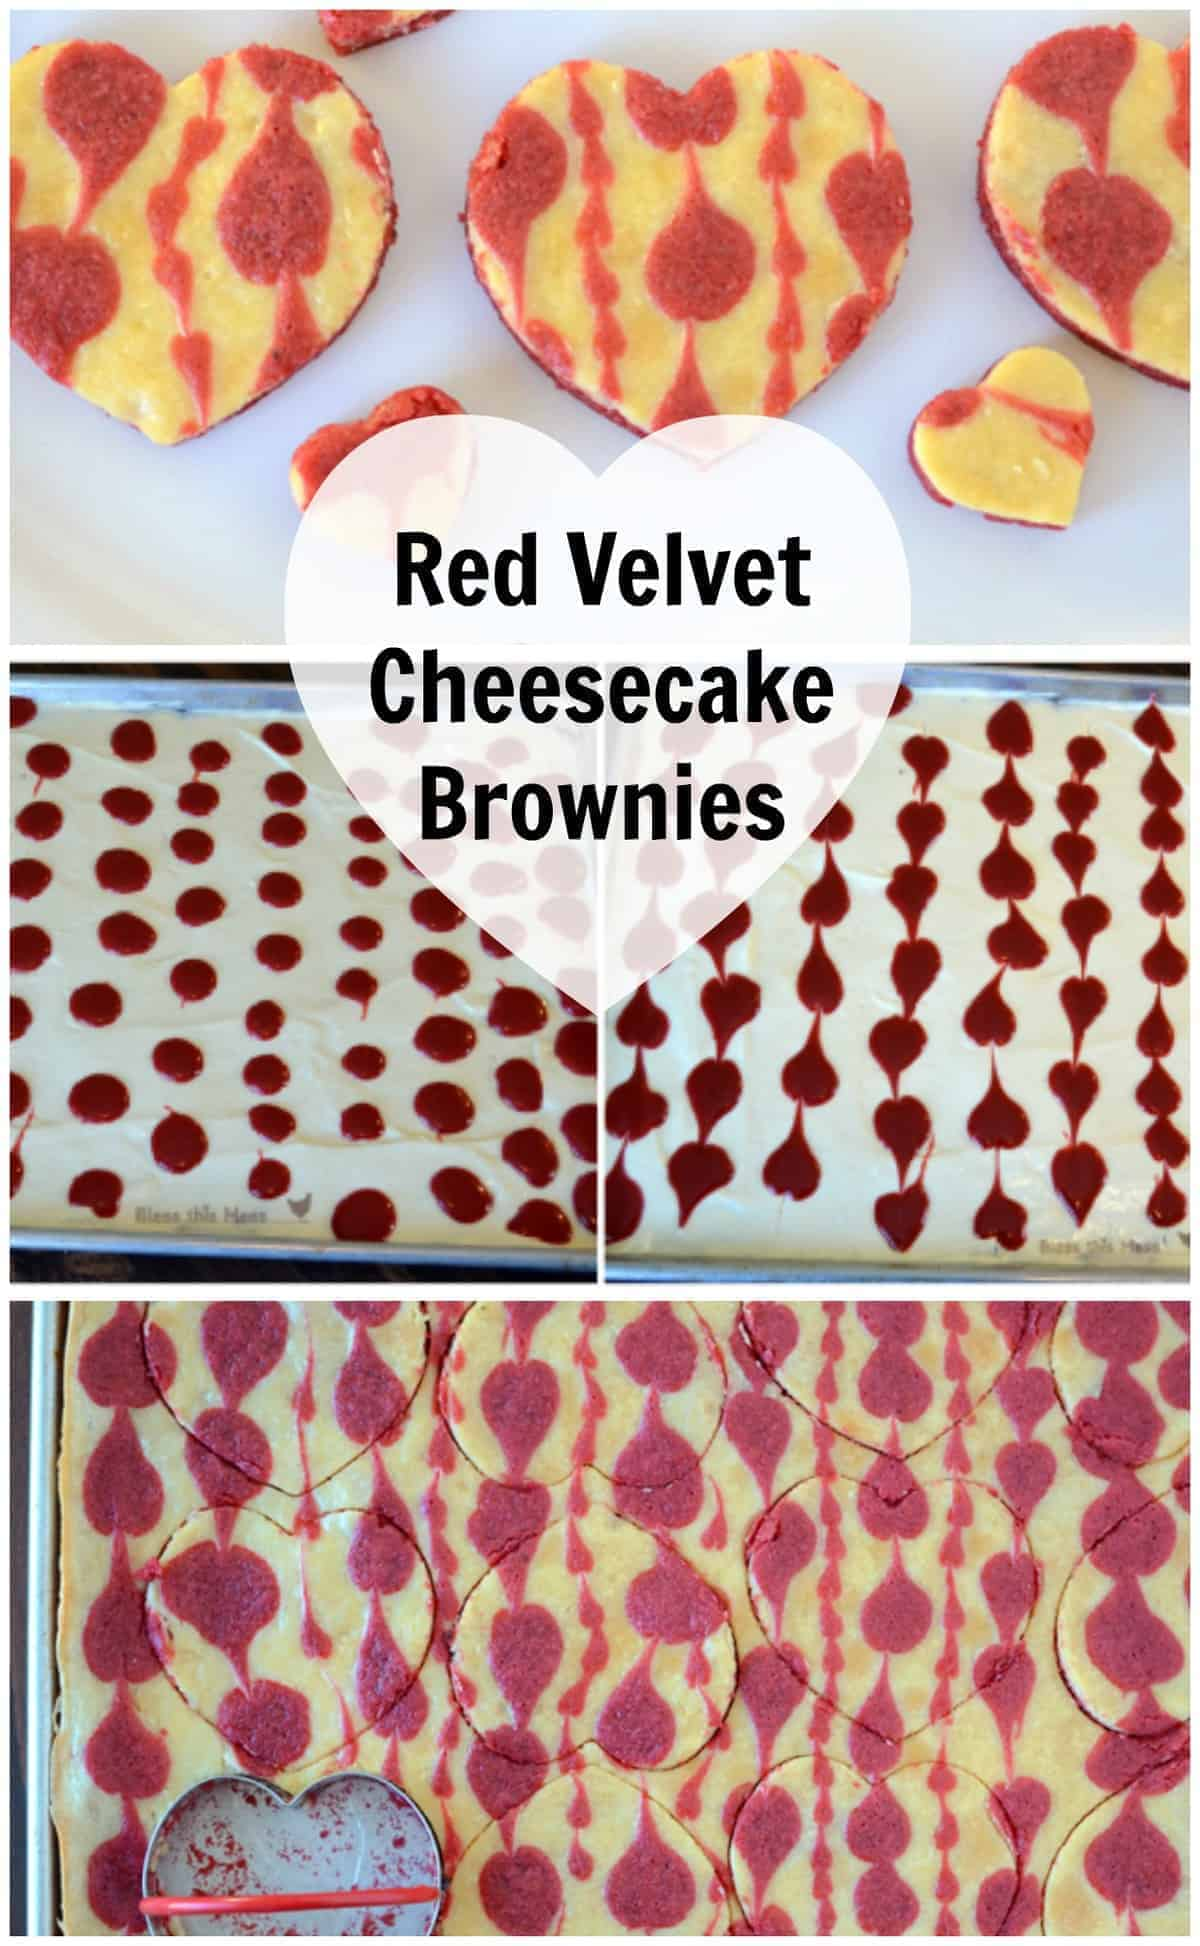 The best red velvet cheesecake brownie bar recipes. Perfect Valentine's Day dessert idea!